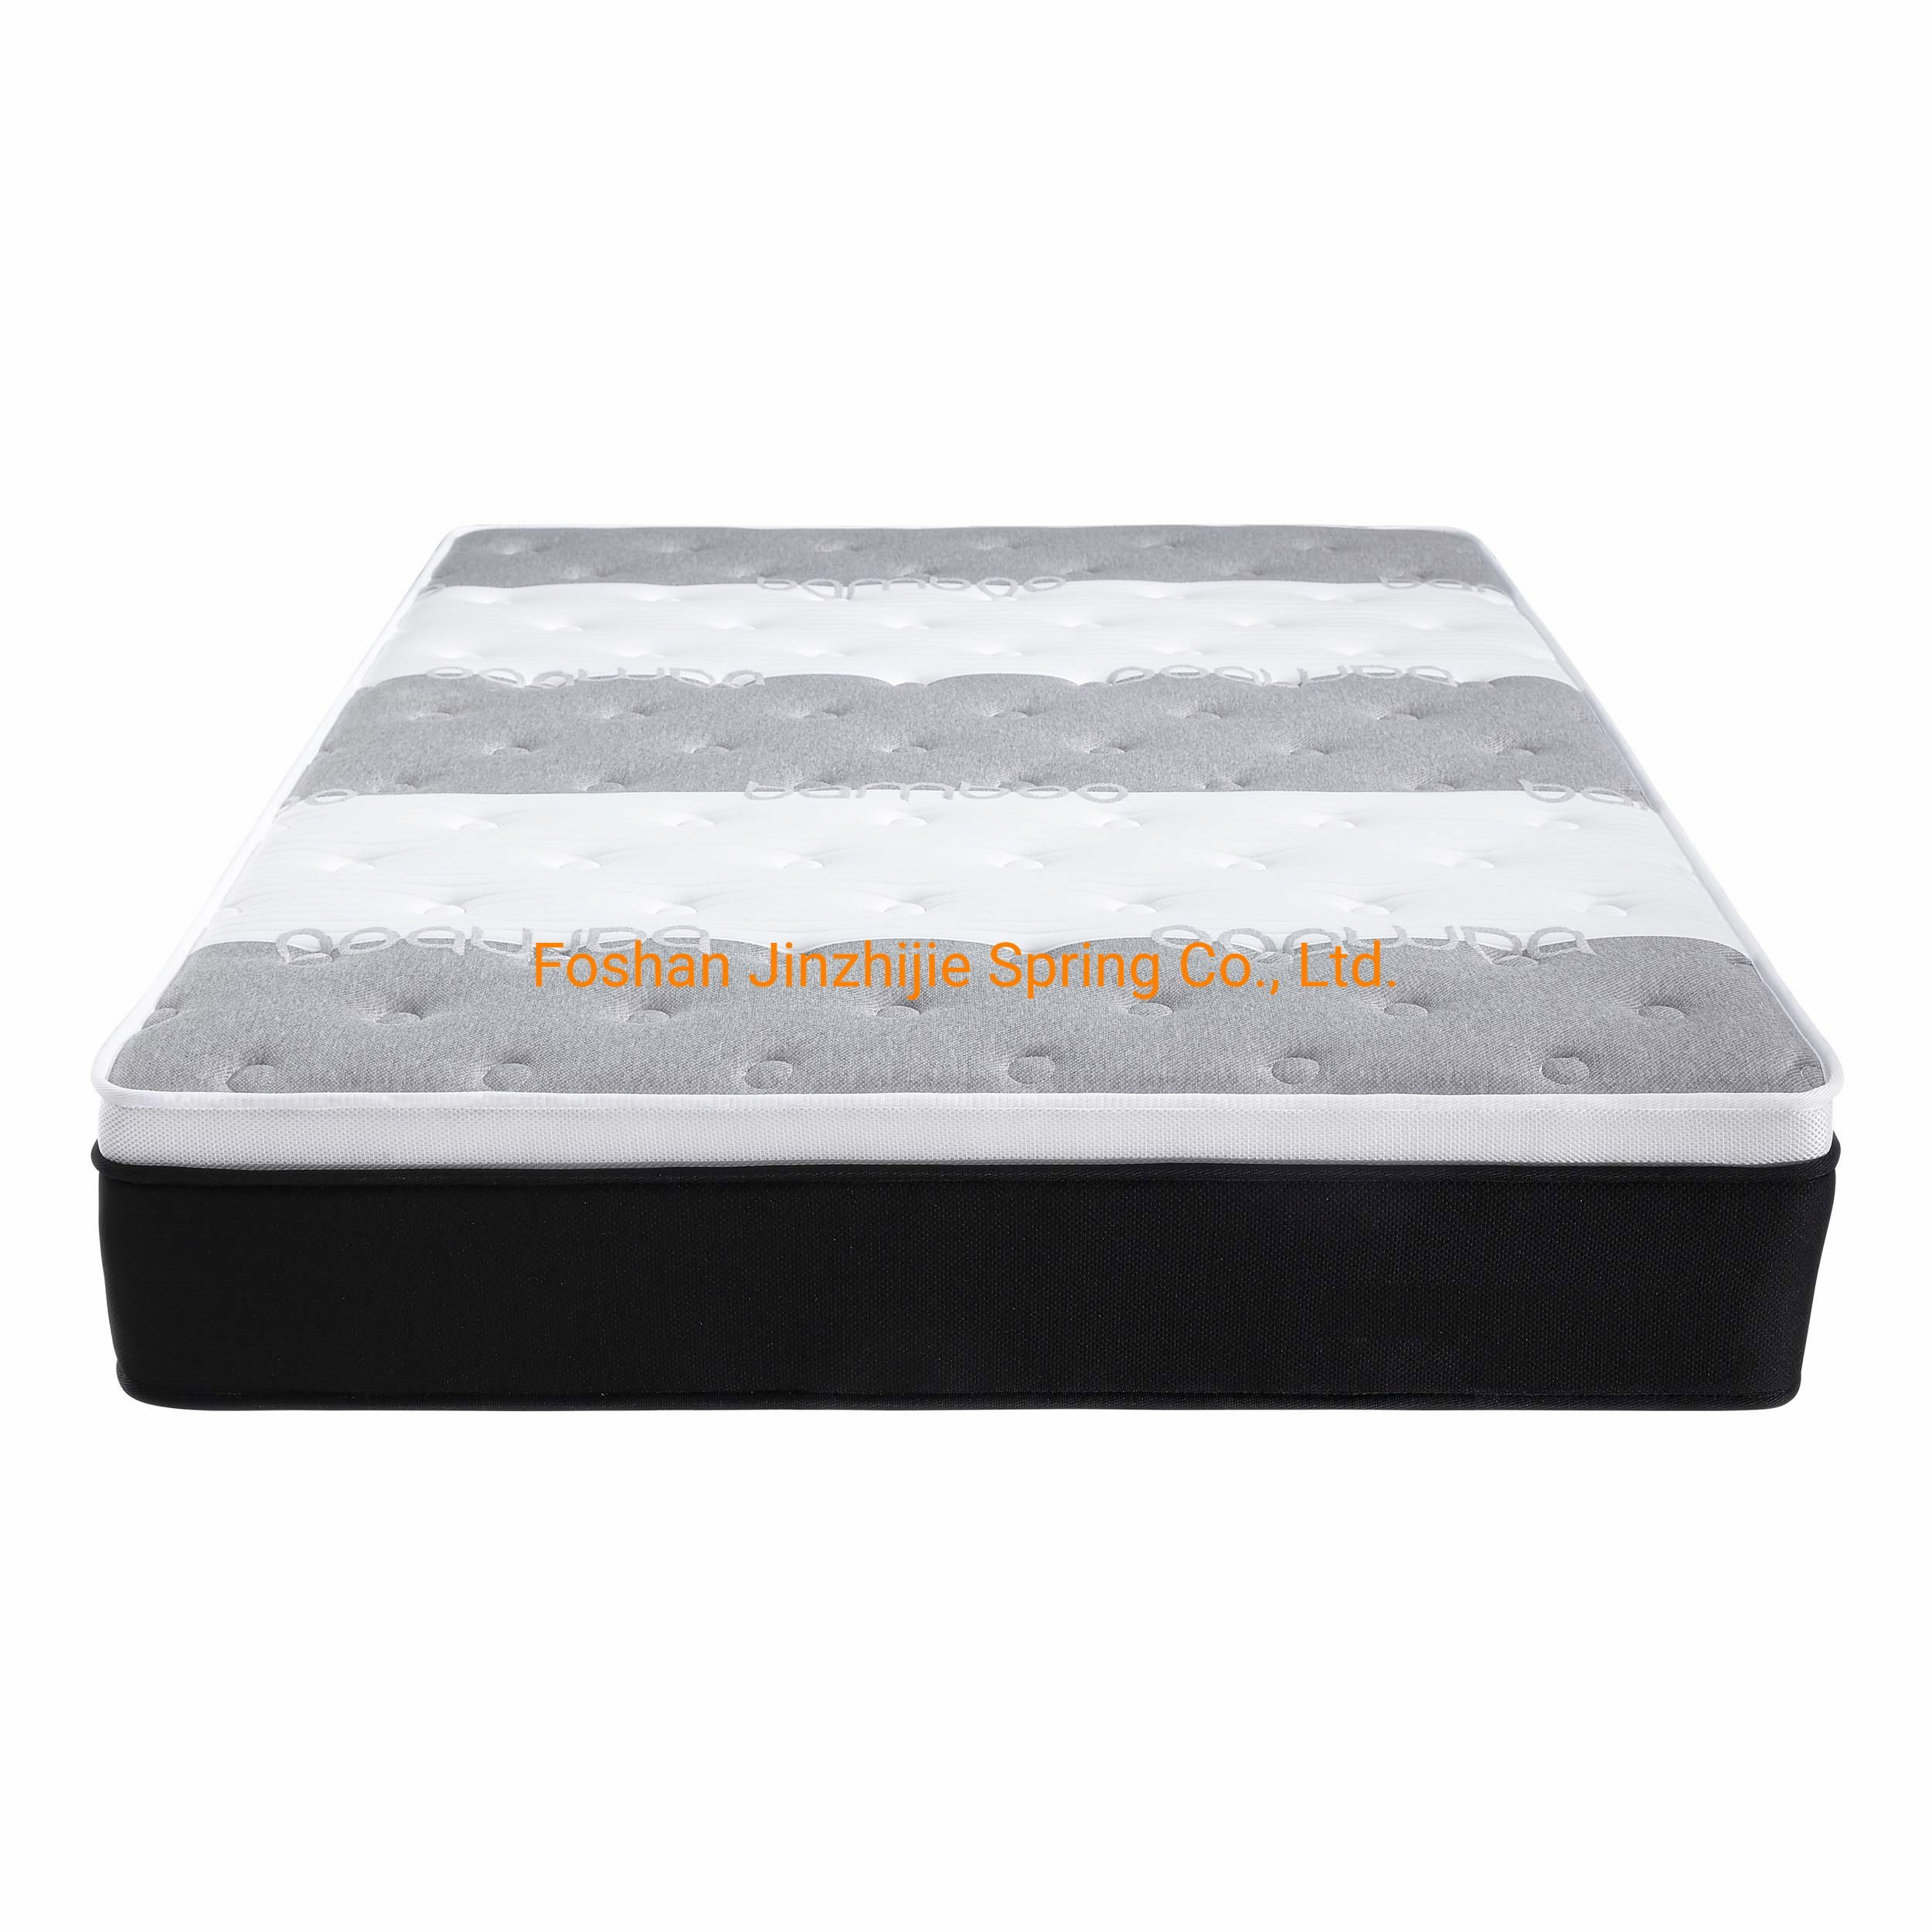 Picture of: China Euro Top Natural Latex Foam Sleepwell Bed Mattresses Pocket Coil Spring Memory Foam Mattress For Sale Online Photos Pictures Made In China Com